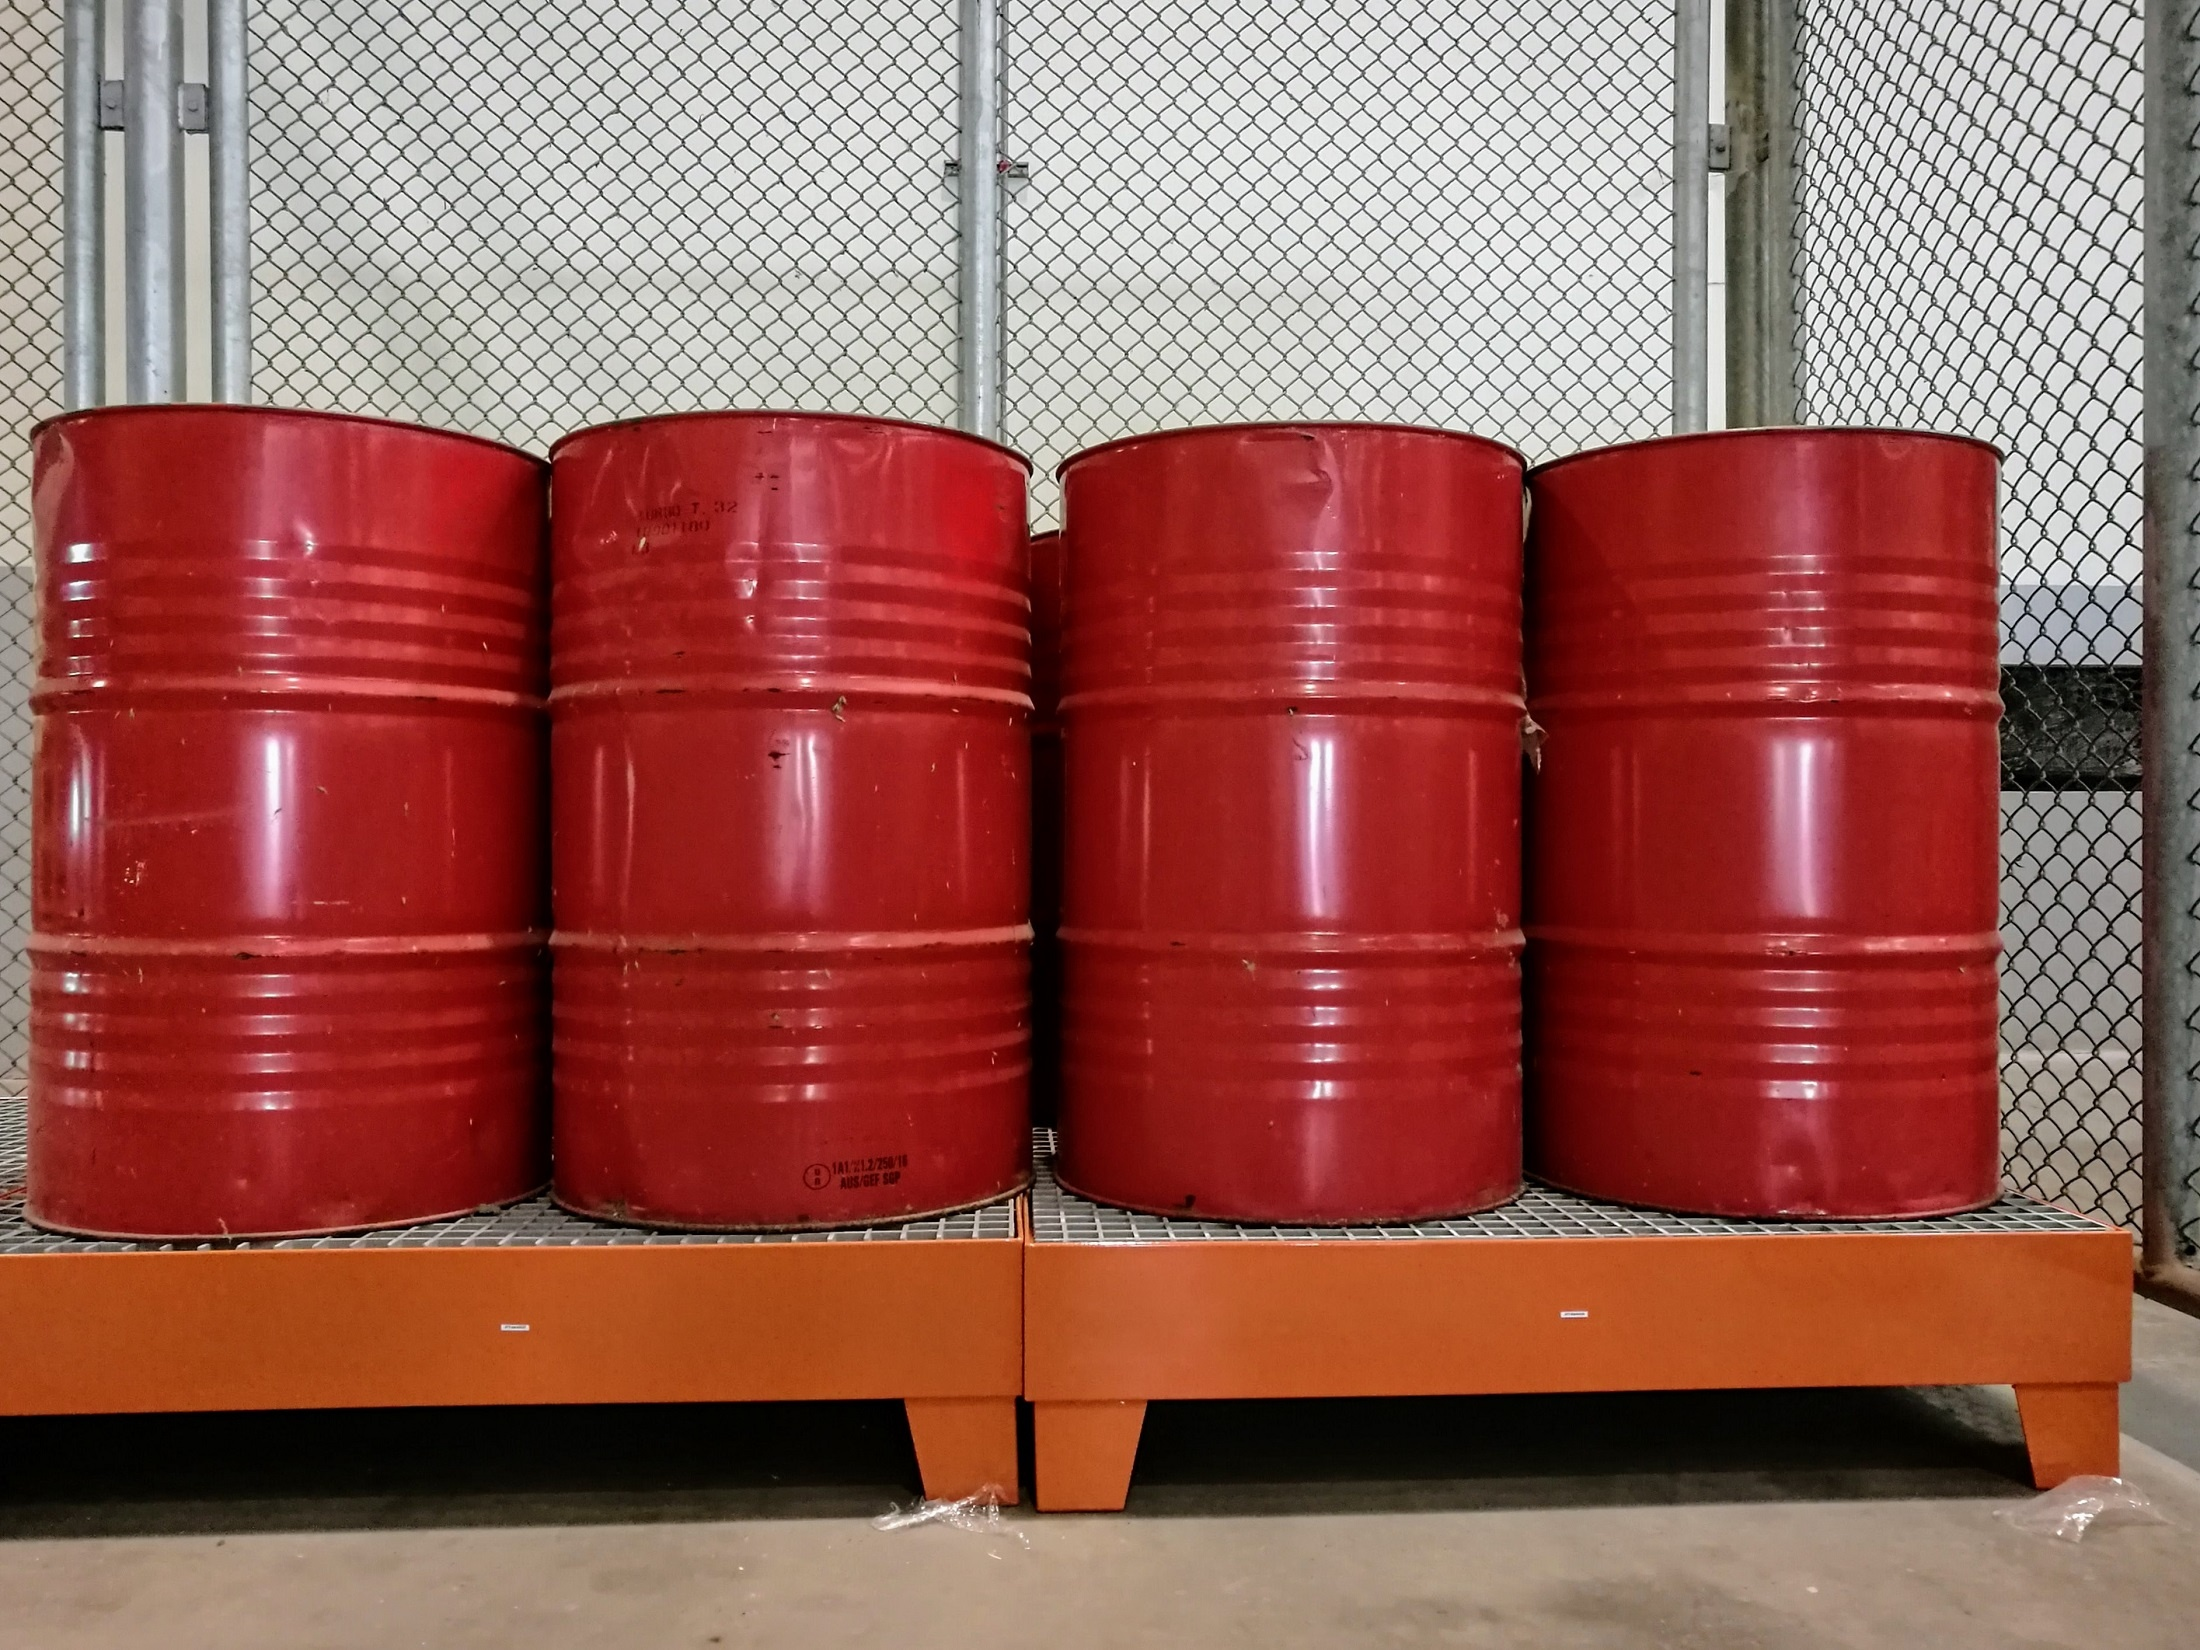 How to sustain compliance with hazardous chemical storage regulations